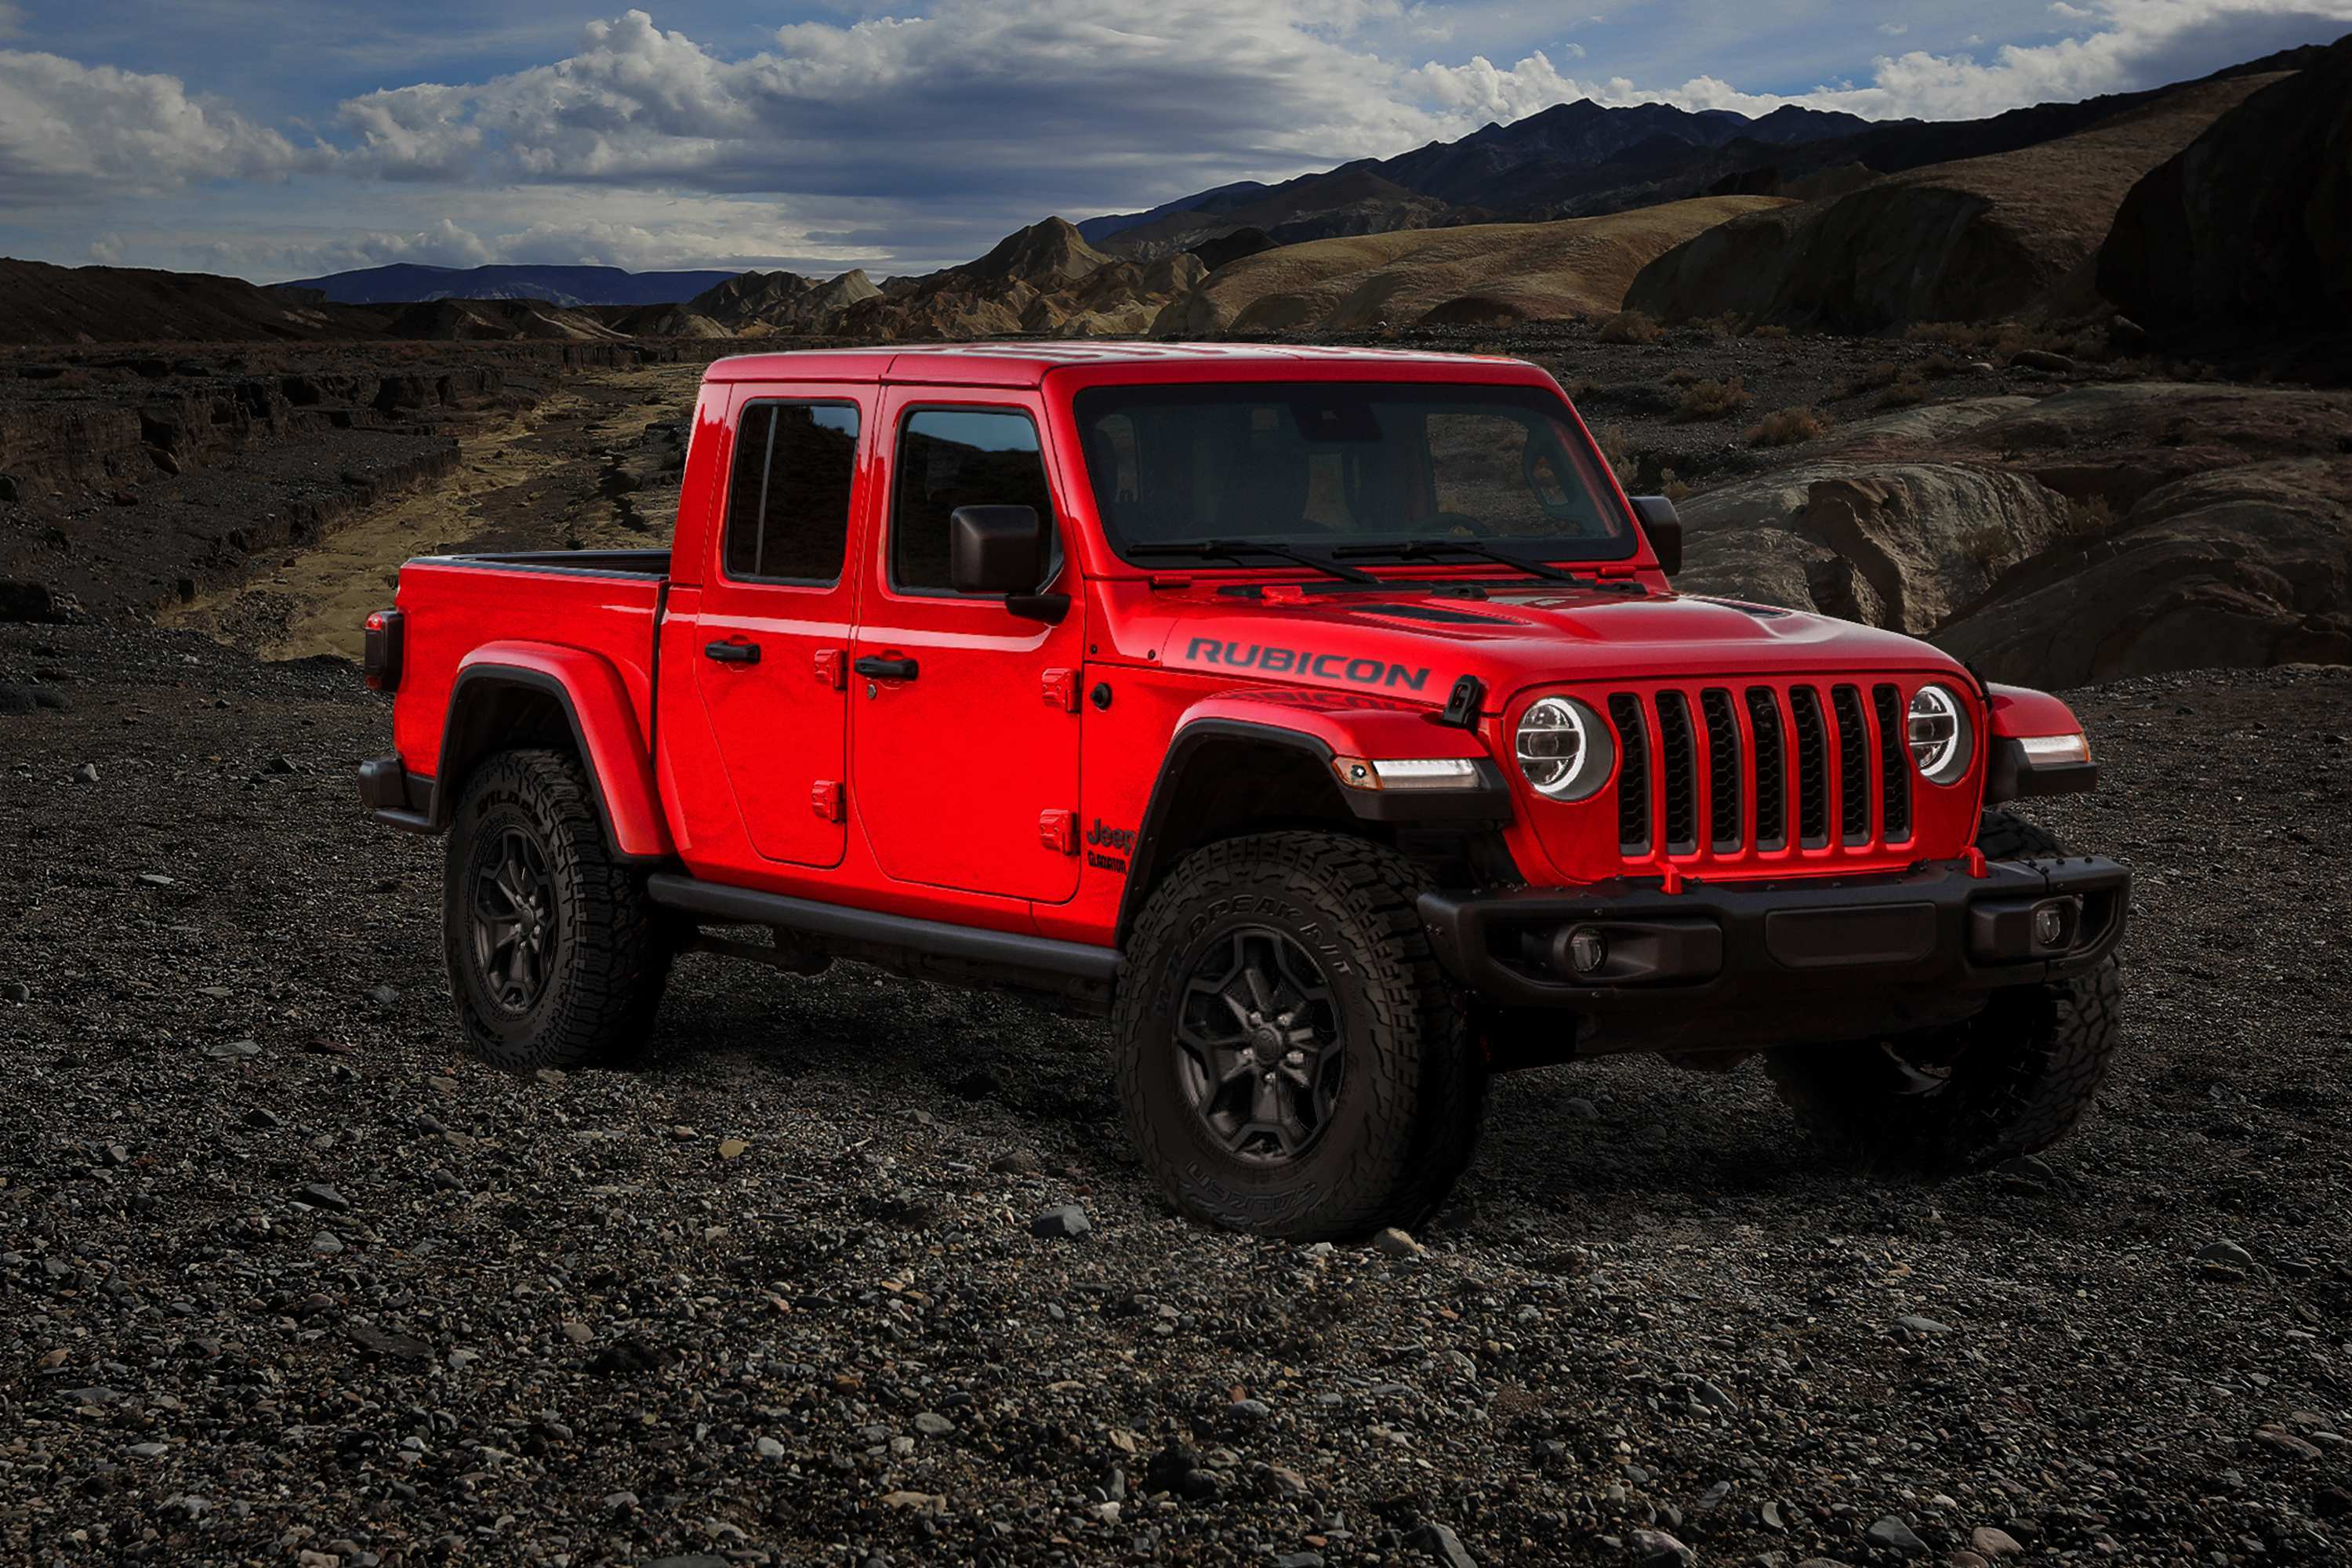 35 New 2020 Jeep Gladiator Video Exterior and Interior for 2020 Jeep Gladiator Video